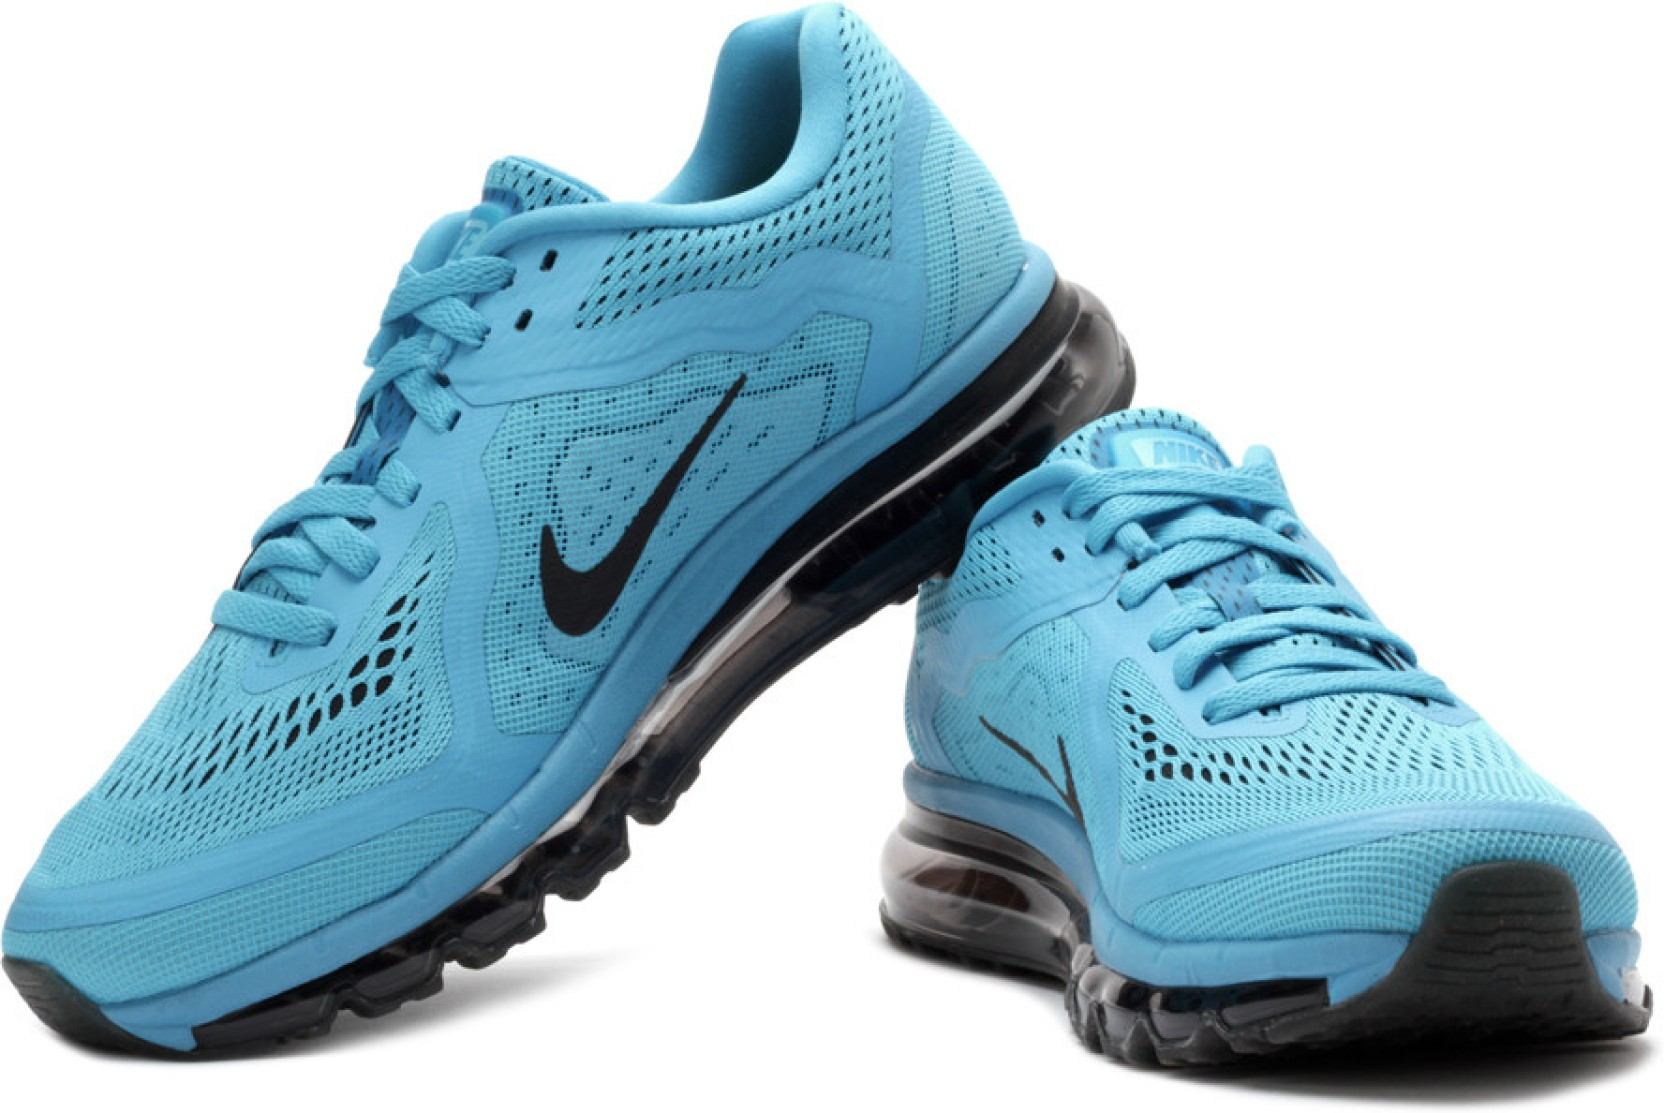 Nike Air Max 2014 Running Shoes - Buy Blue, Black Color ...